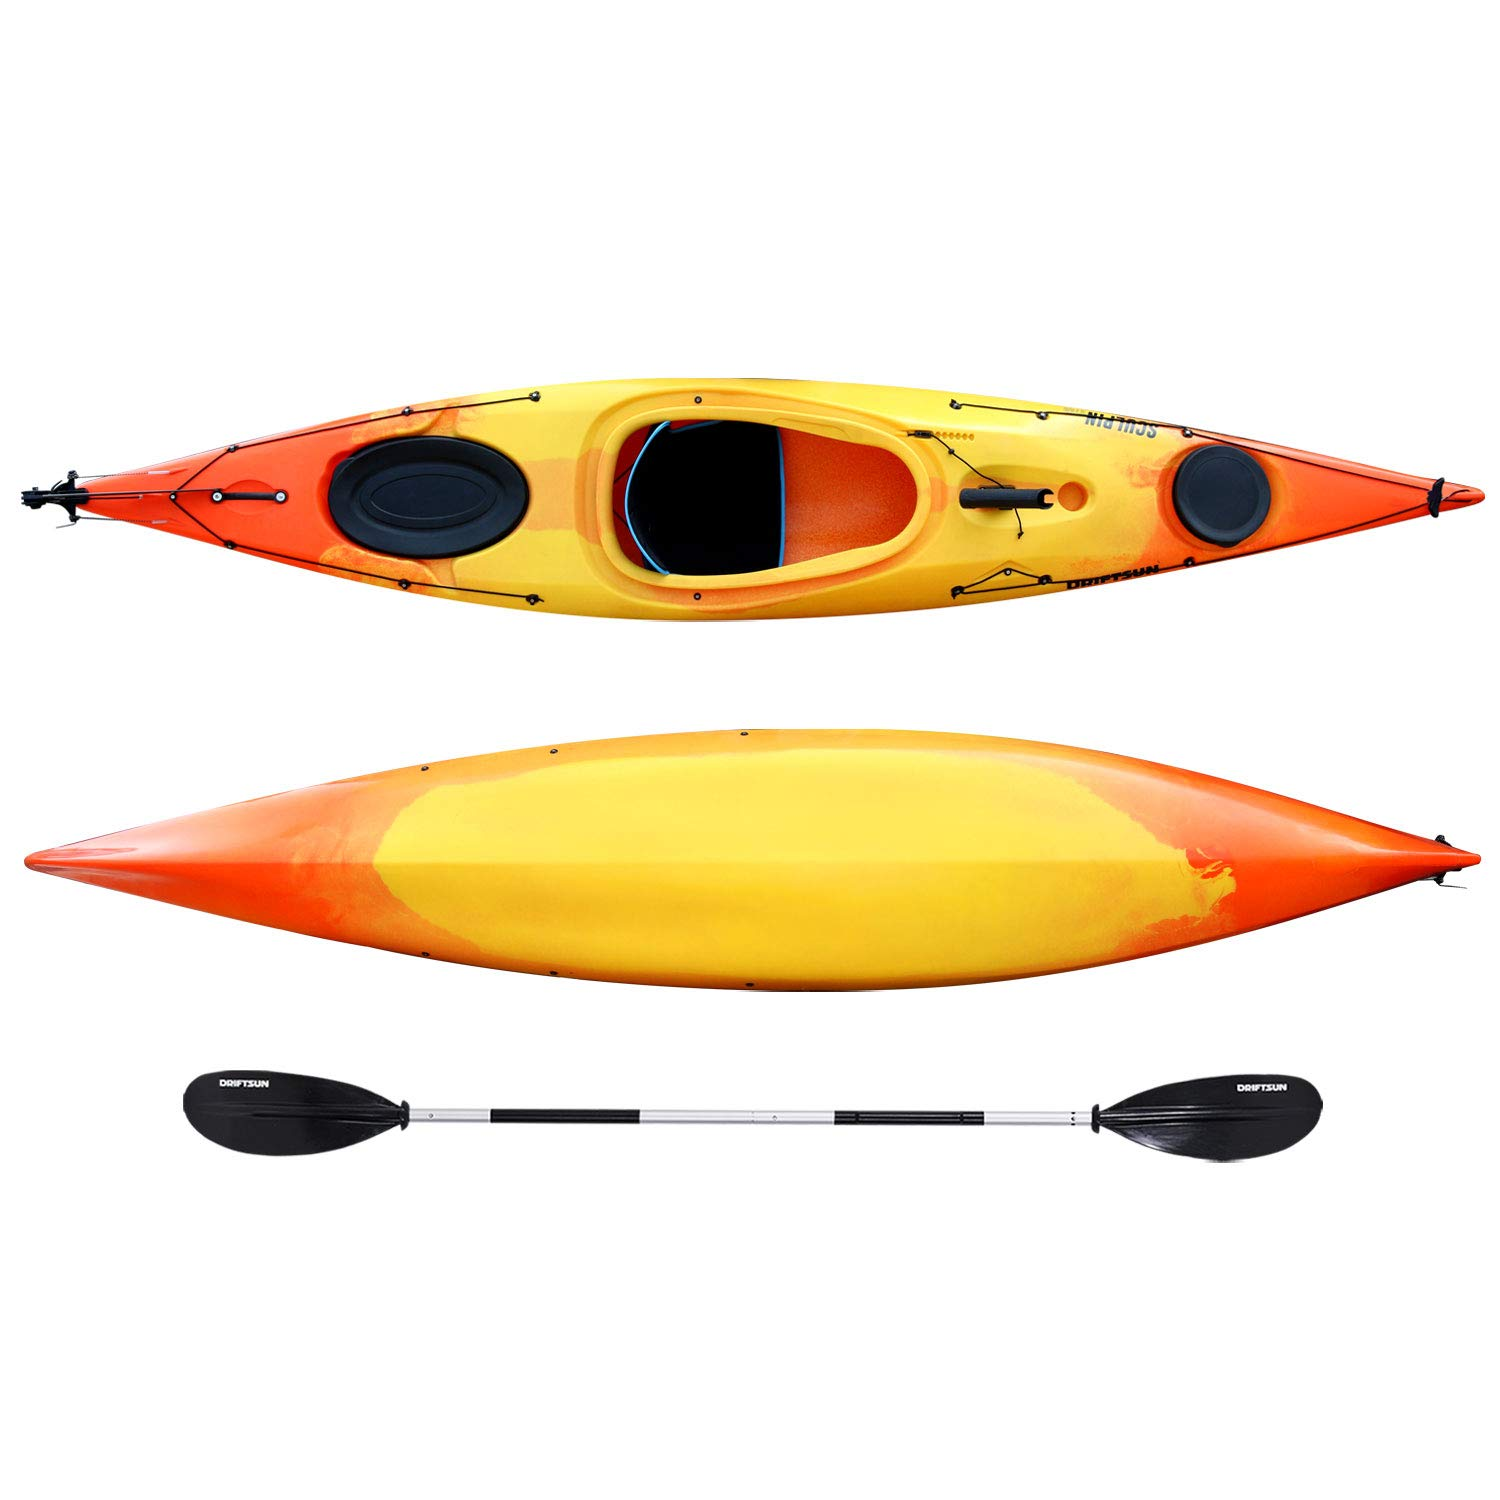 Driftsun Sculpin 12.5 Foot Long Rotomolded Sit-in Kayak, Includes SmartTrack Foot Operated Rudder, Paddle, and Rod Holder